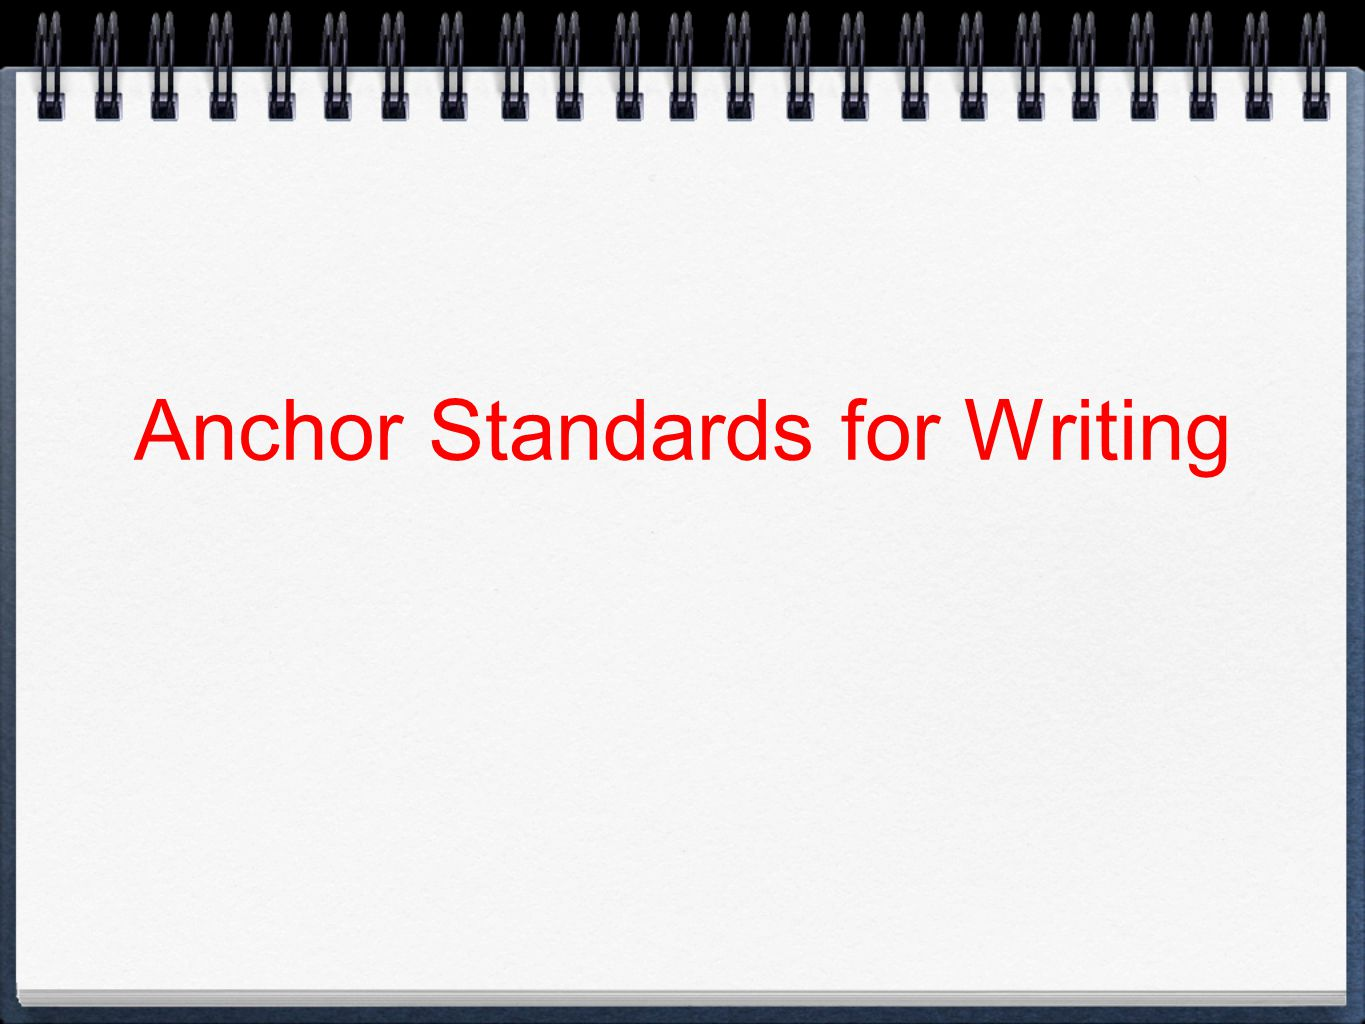 Anchor Standards for Writing